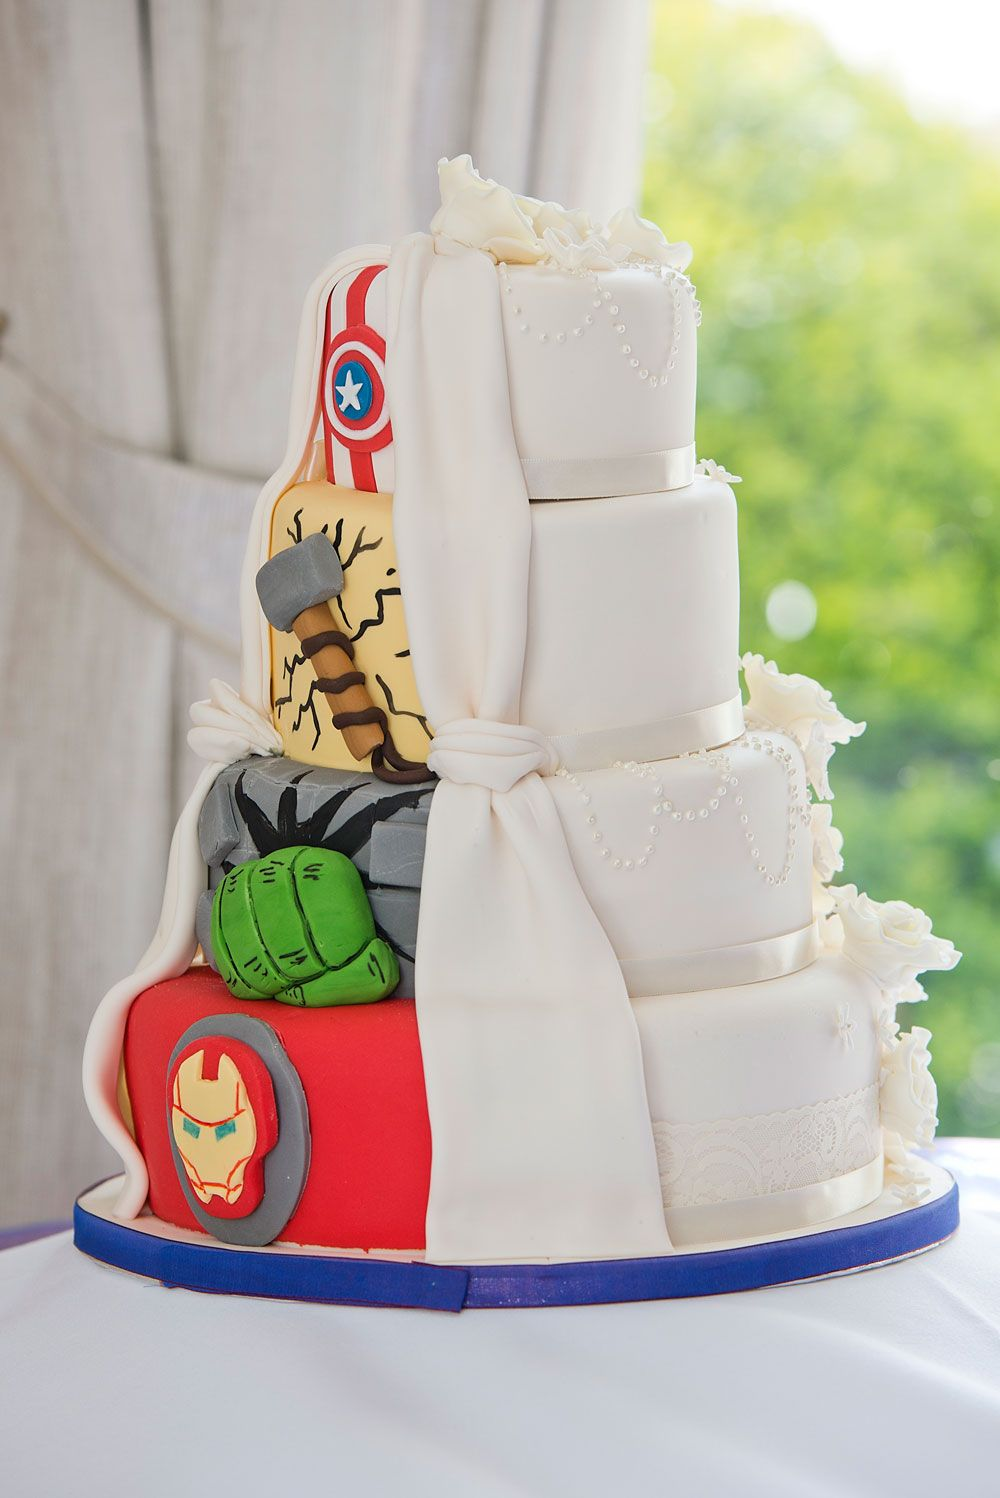 10 Ideas for a Marvel Superhero Wedding | Pinterest | Superhero ...